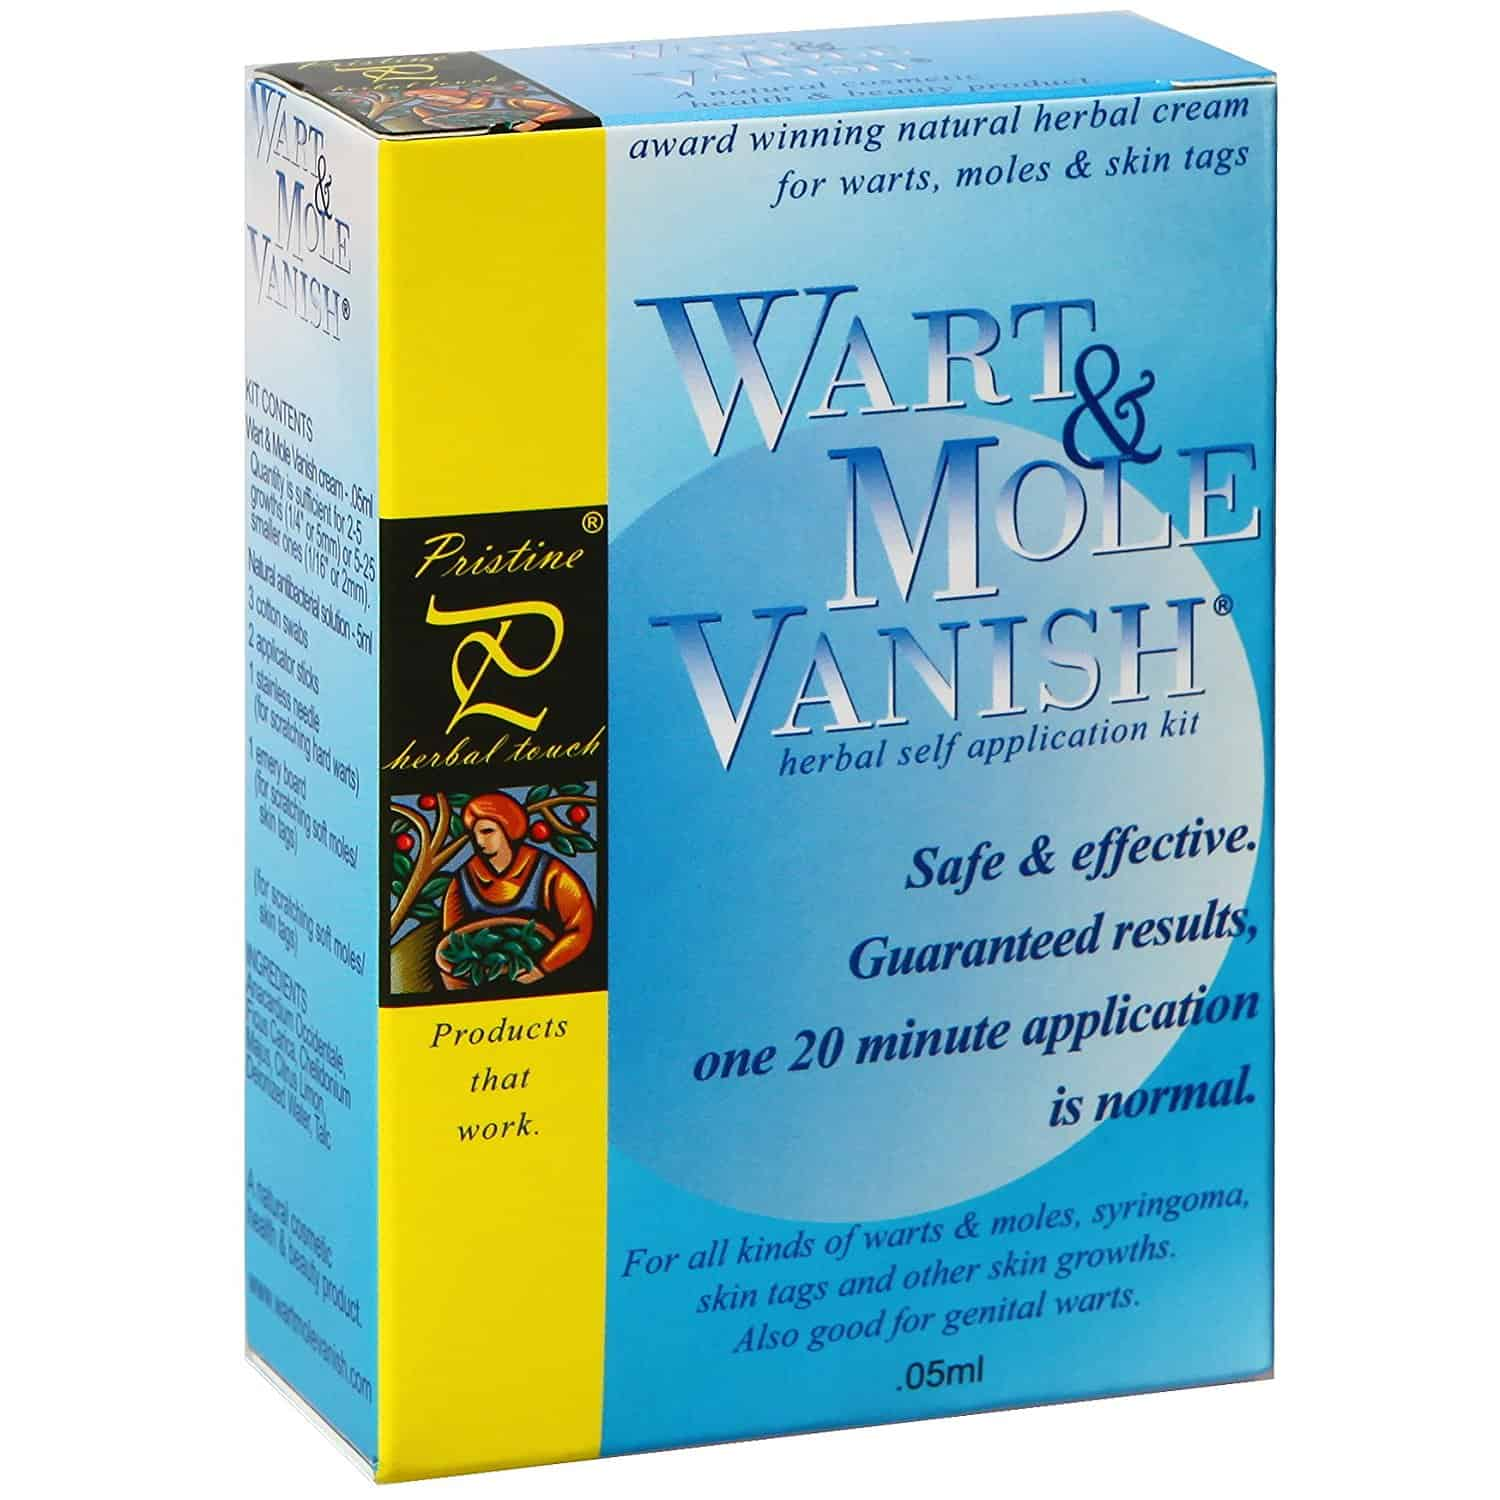 Wart Mole Vanish Kit for skin tags